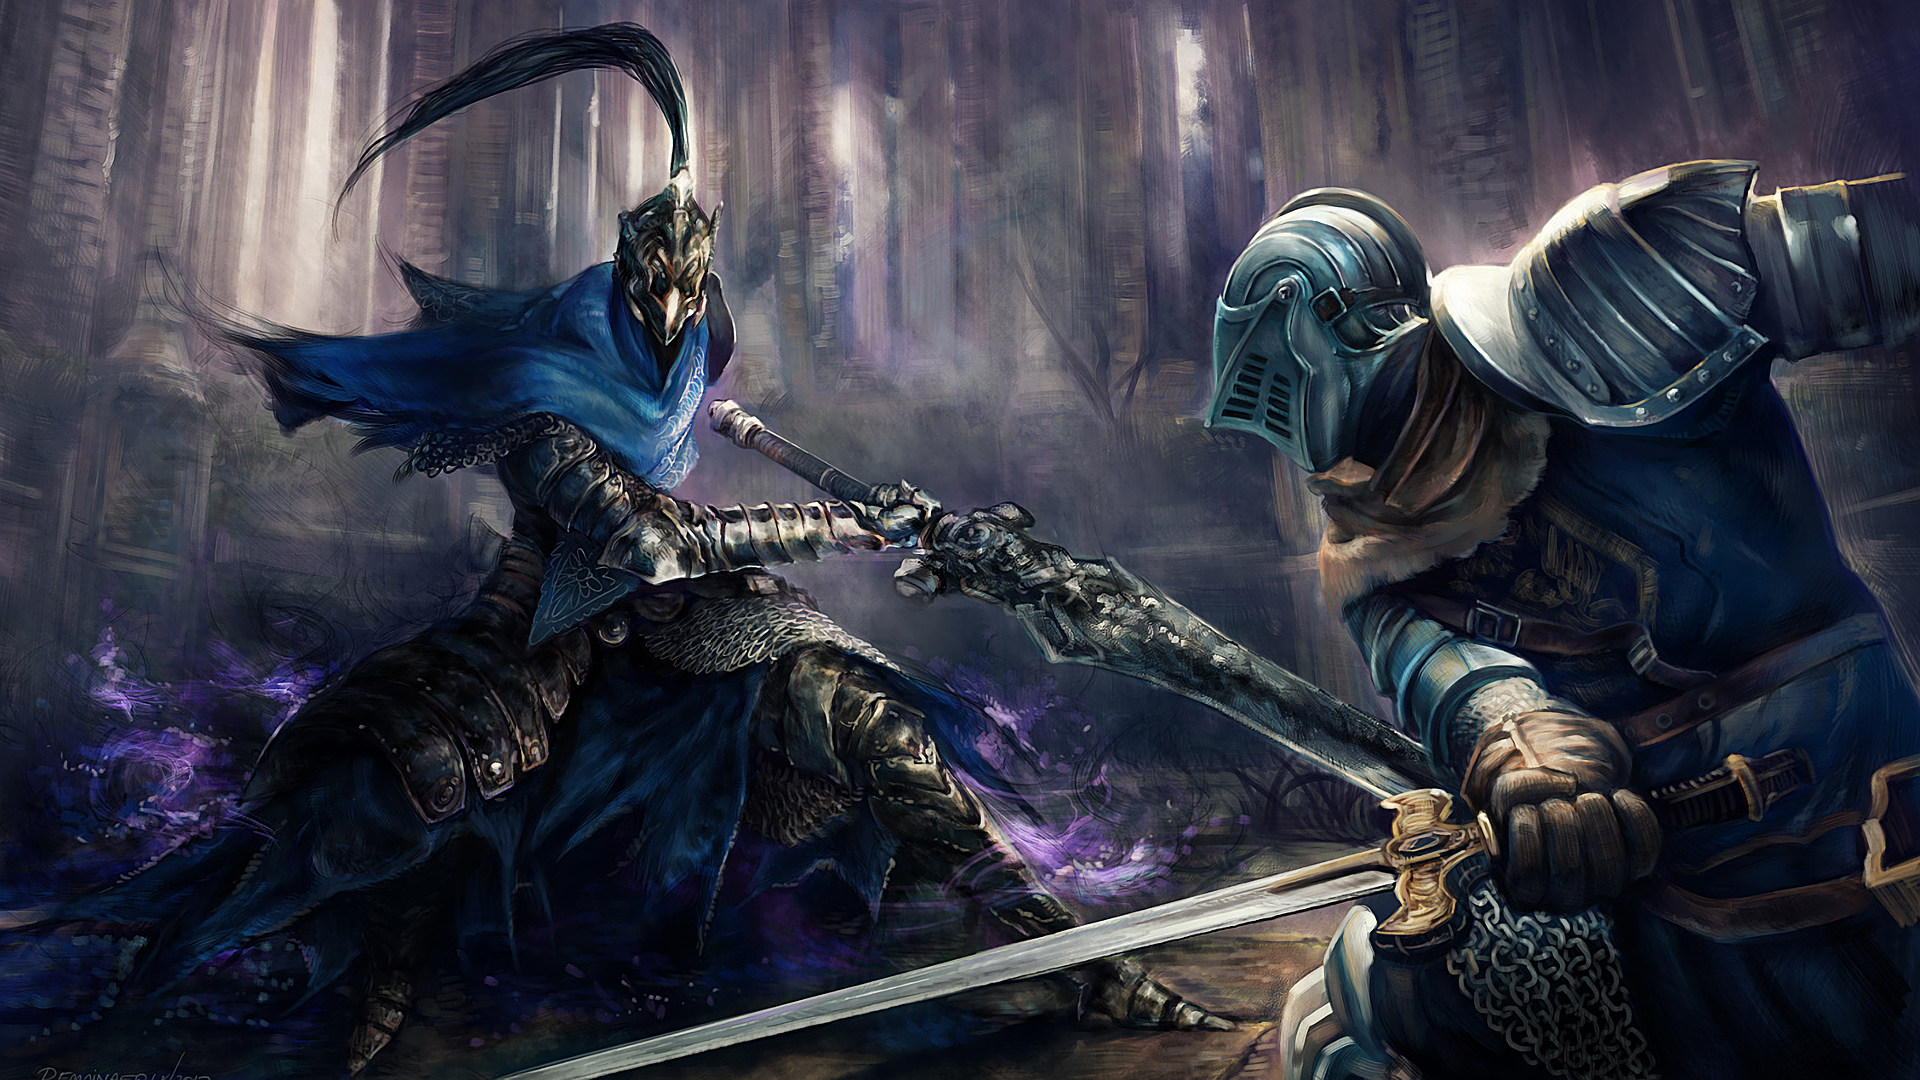 Dark Souls Background 1920x1080: Artorias Of The Abyss Duel Full HD Wallpaper And